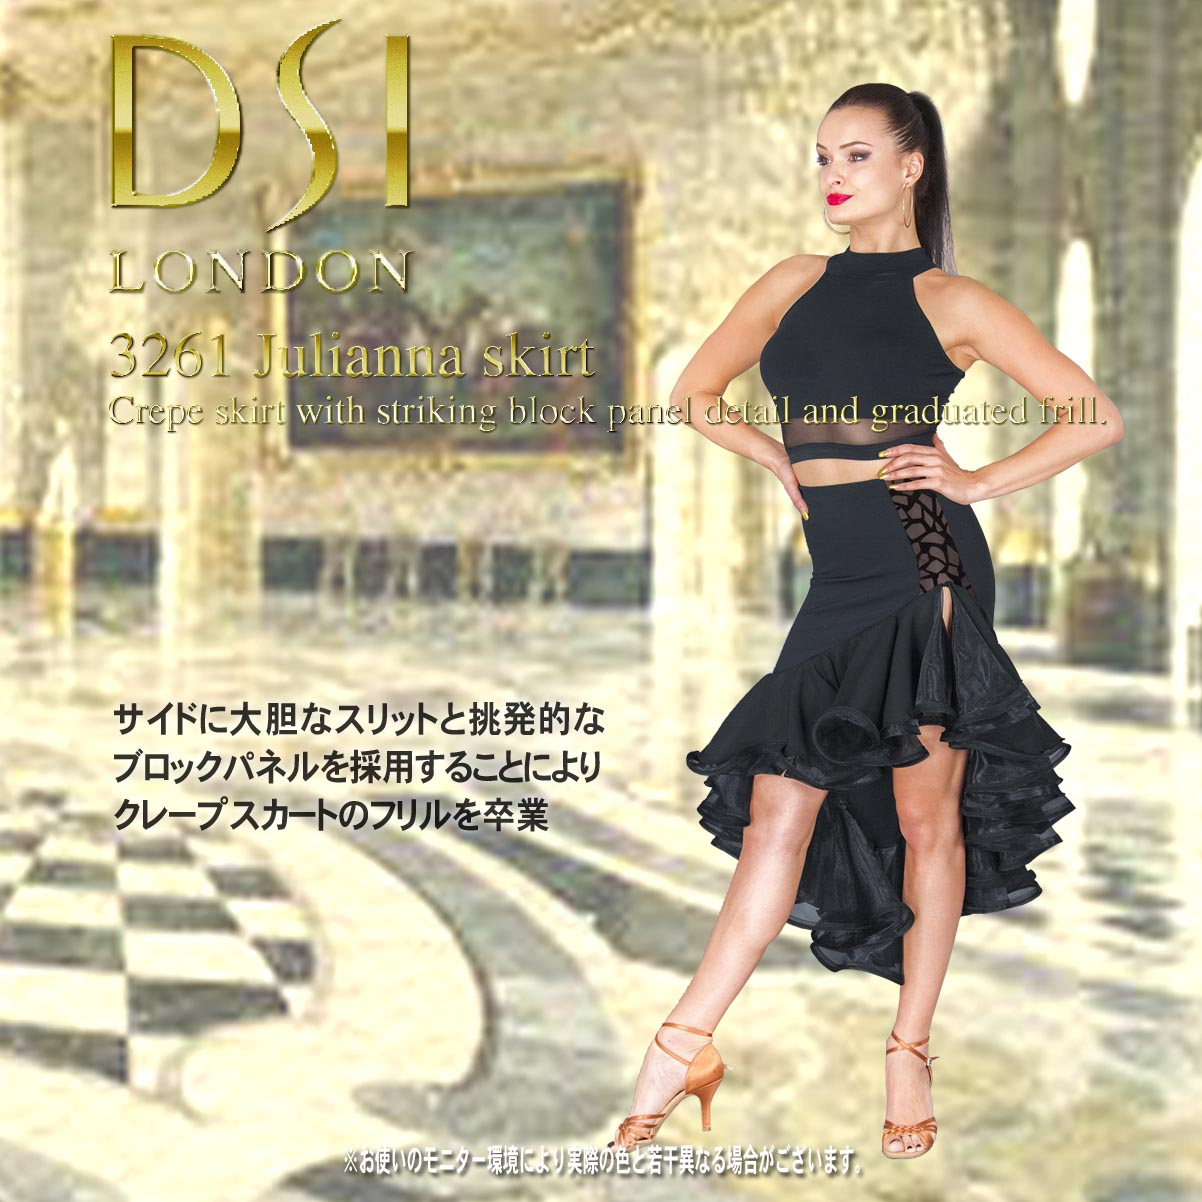 DSI 3261 Julianna skirt DS3261 ラテンスカート01